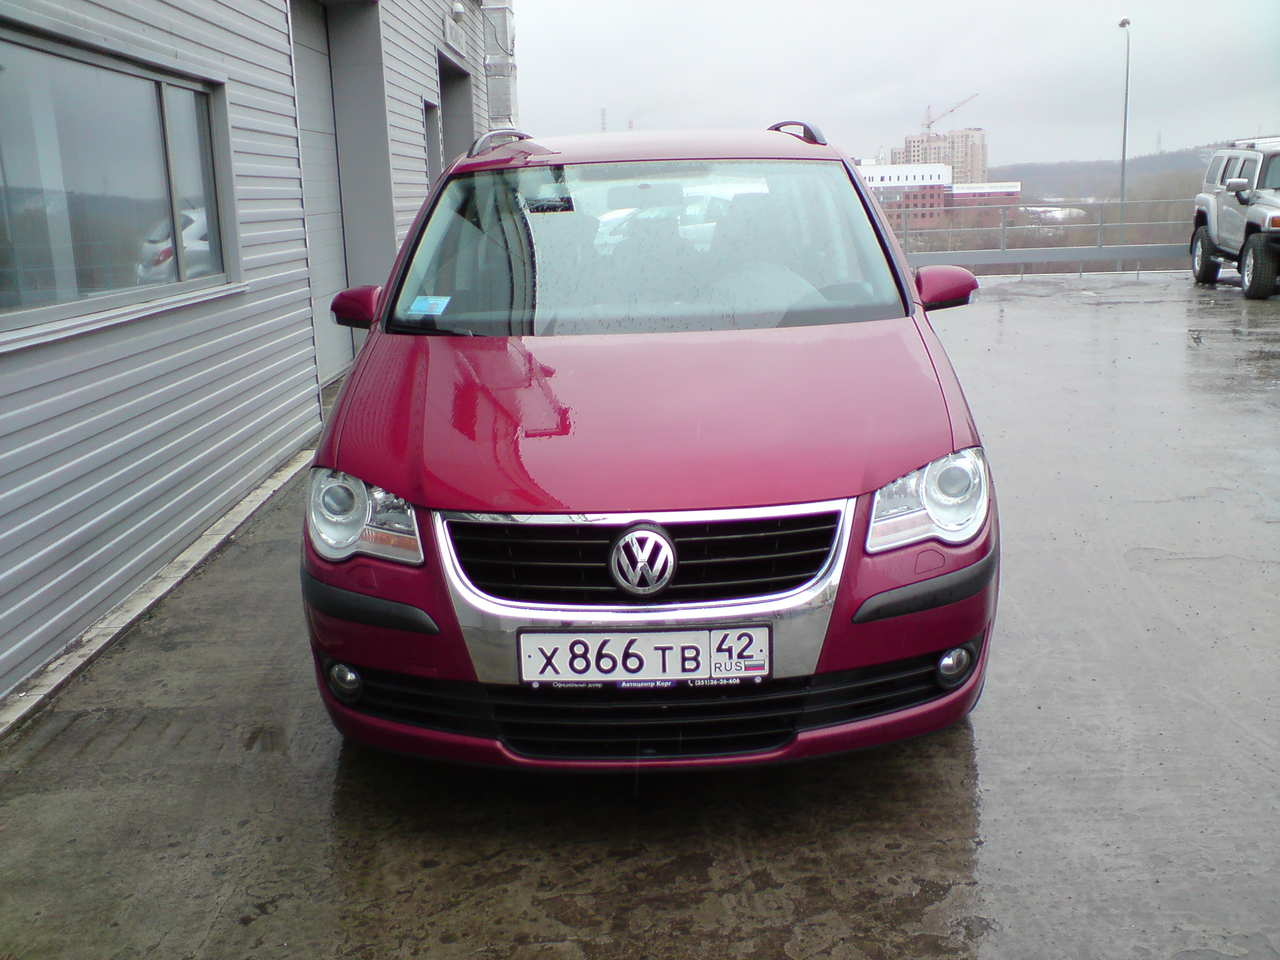 2008 volkswagen touran photos 1 4 gasoline ff automatic for sale. Black Bedroom Furniture Sets. Home Design Ideas